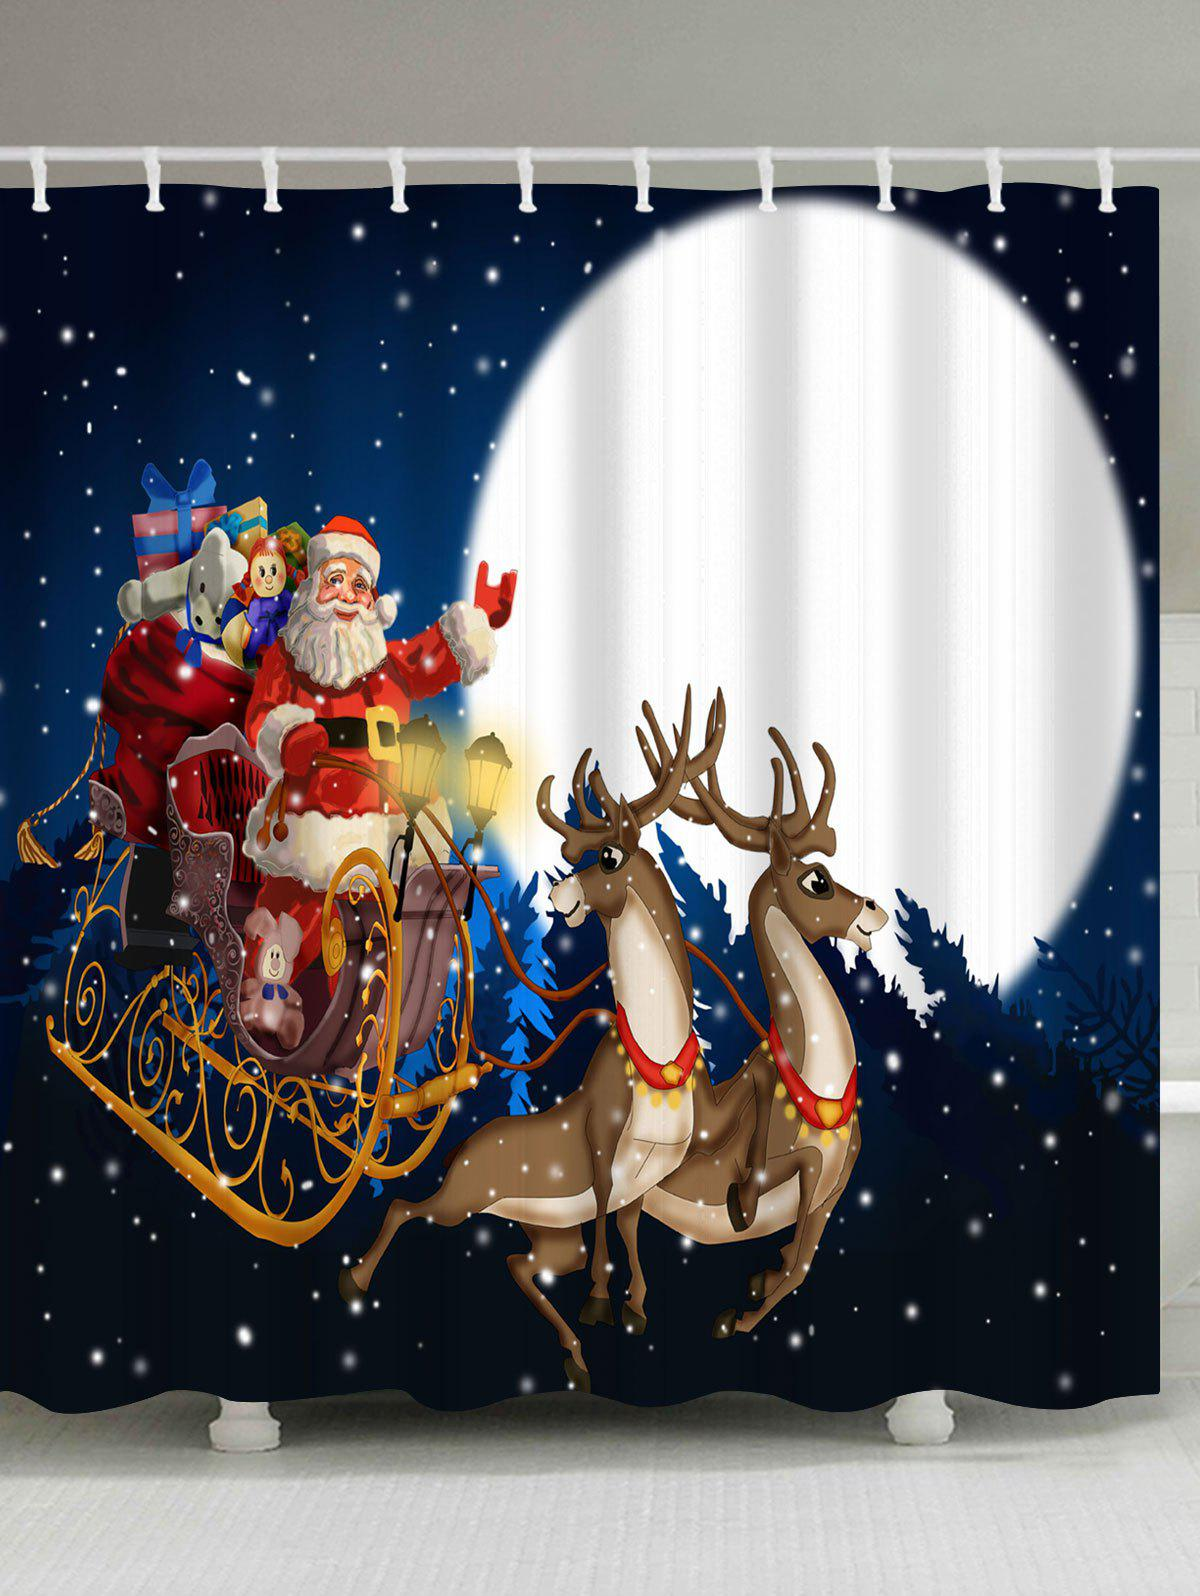 Christmas Sled Moon Night Waterproof Shower CurtainHOME<br><br>Size: W59 INCH * L71 INCH; Color: BLUE; Products Type: Shower Curtains; Materials: Polyester; Pattern: Elk,Moon,Santa Claus; Style: Festival; Number of Hook Holes: W59 inch*L71 inch: 10; W71 inch*L71 inch: 12; W71 inch*L79 inch: 12; Package Contents: 1 x Shower Curtain 1 x Hooks (Set);